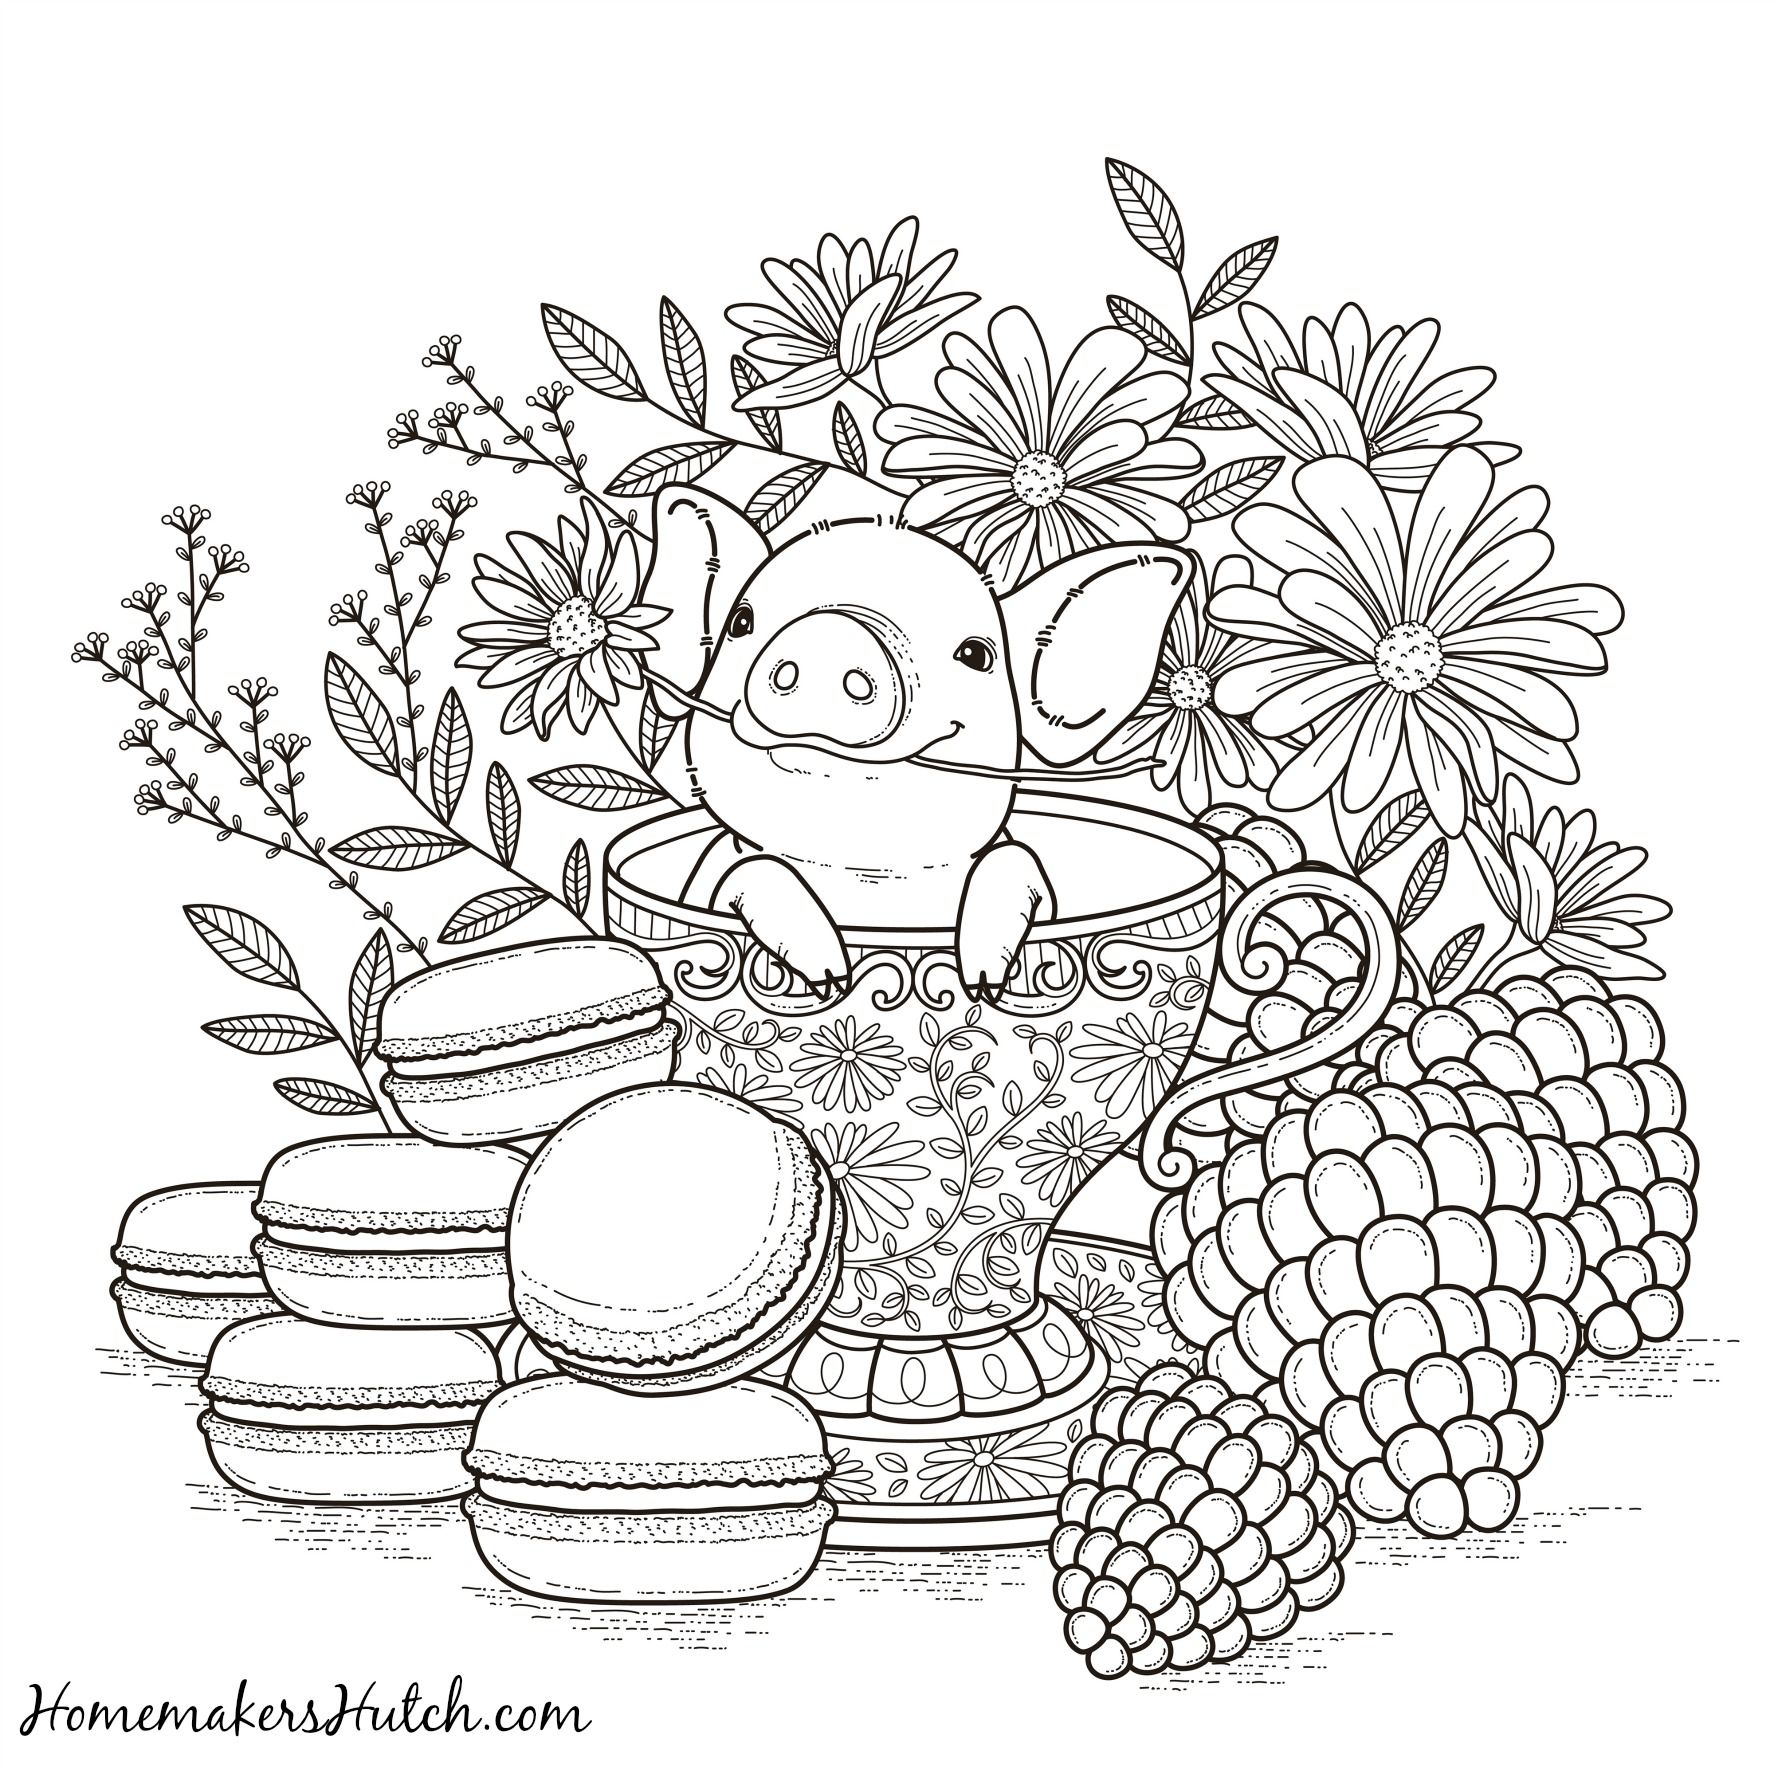 Pig In A Tea Cup - Adult Coloring Page | Coloring | Free